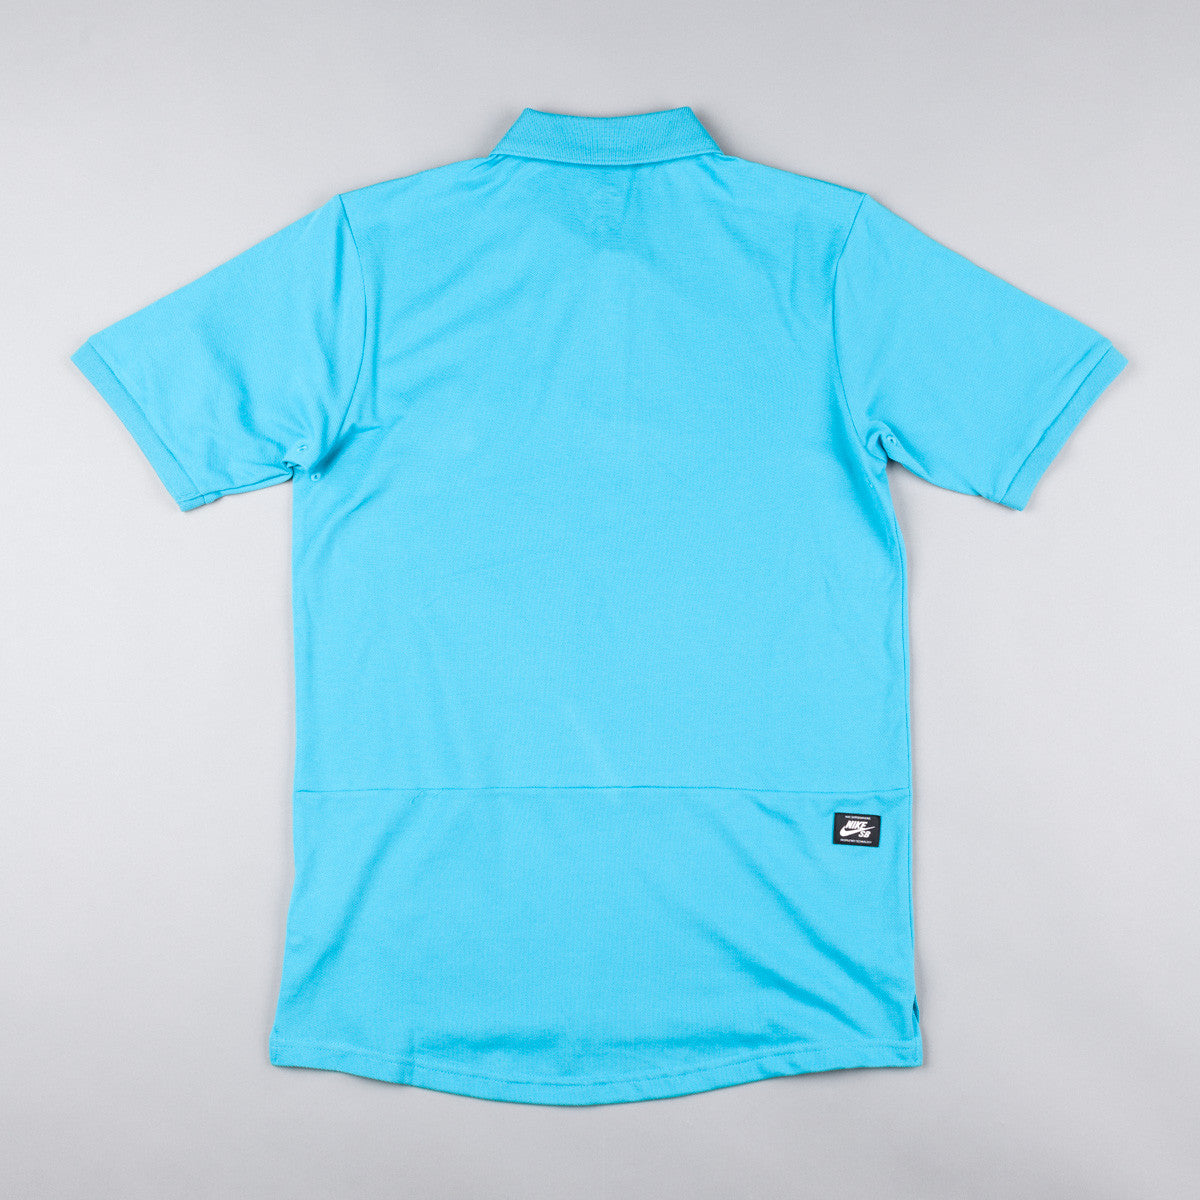 Nike SB Dri-Fit Pique Polo Shirt - Omega Blue / White